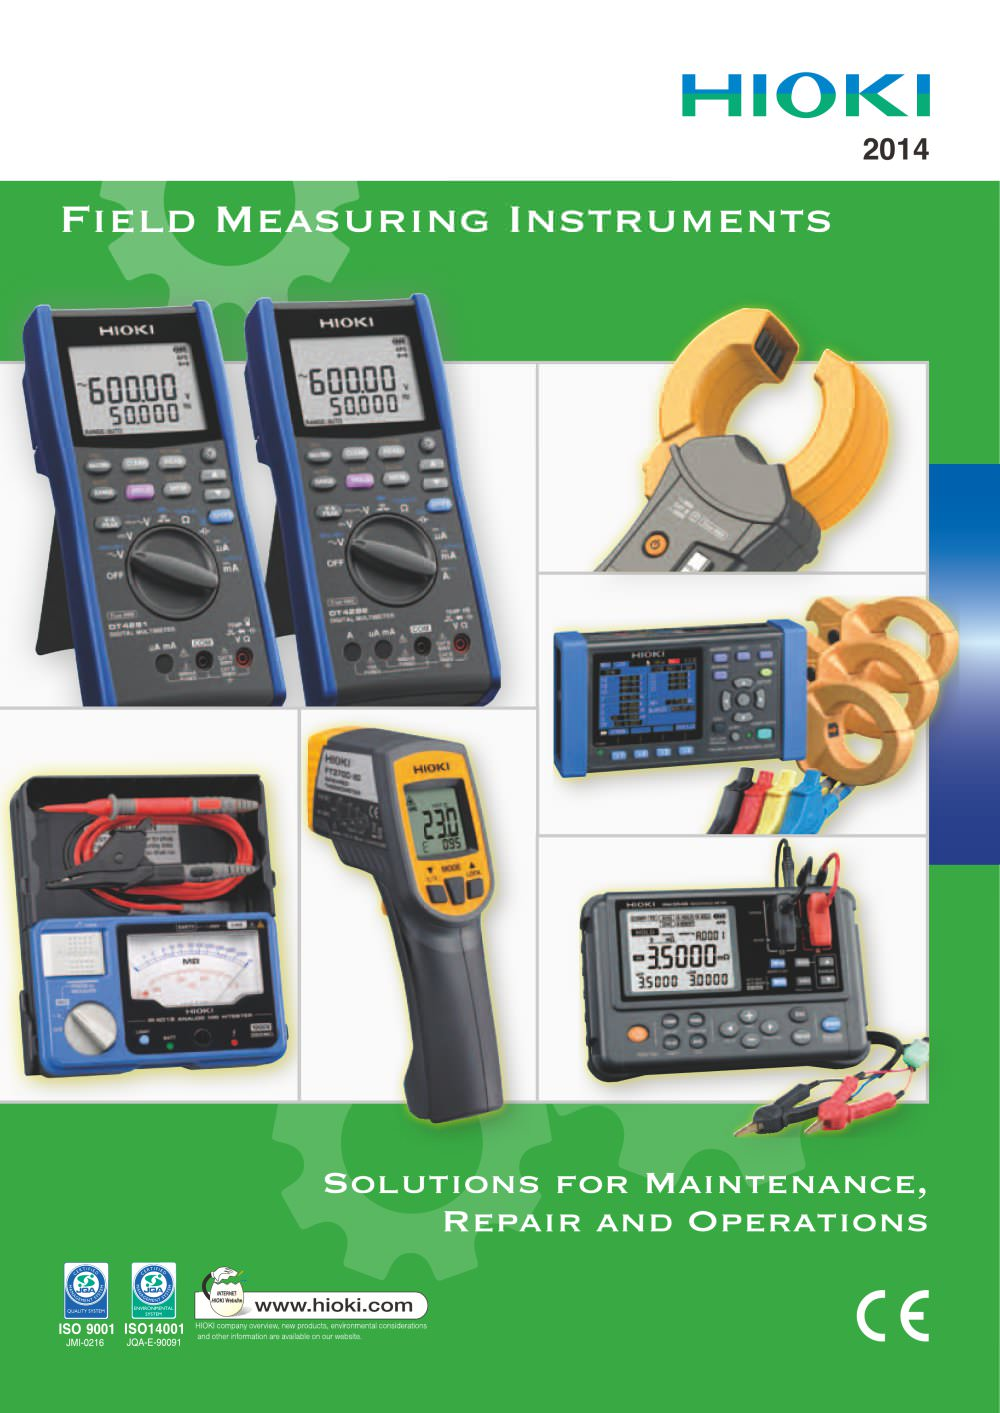 hioki-field-measuring-instruments-catalog-2014-232024_1b